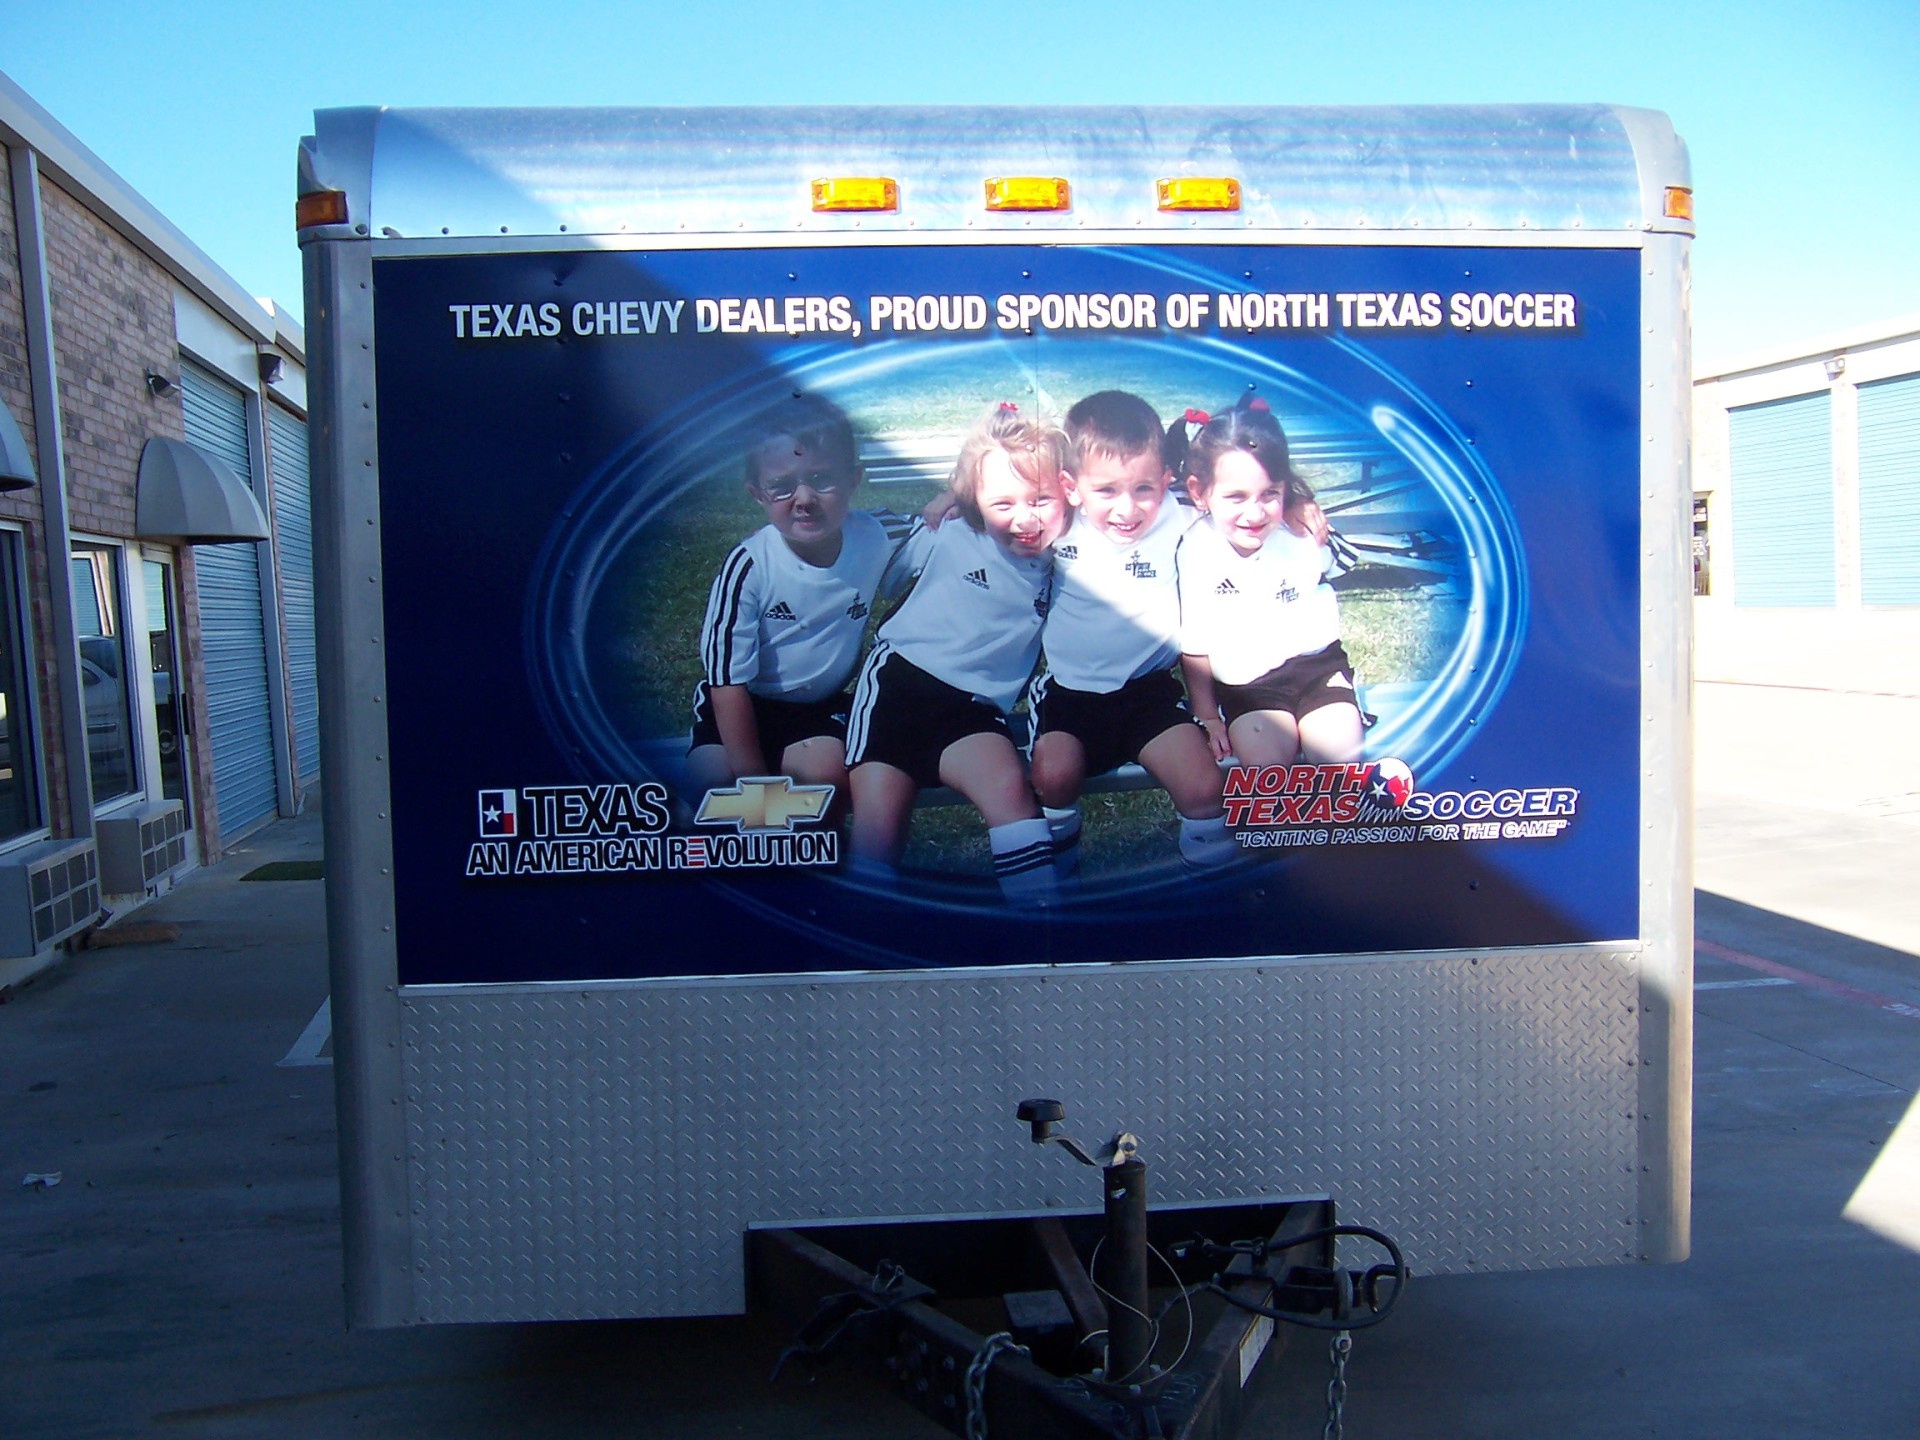 Trailer Wrap Frisco Texas, Trailer wrap dallas, Best trailer wrap